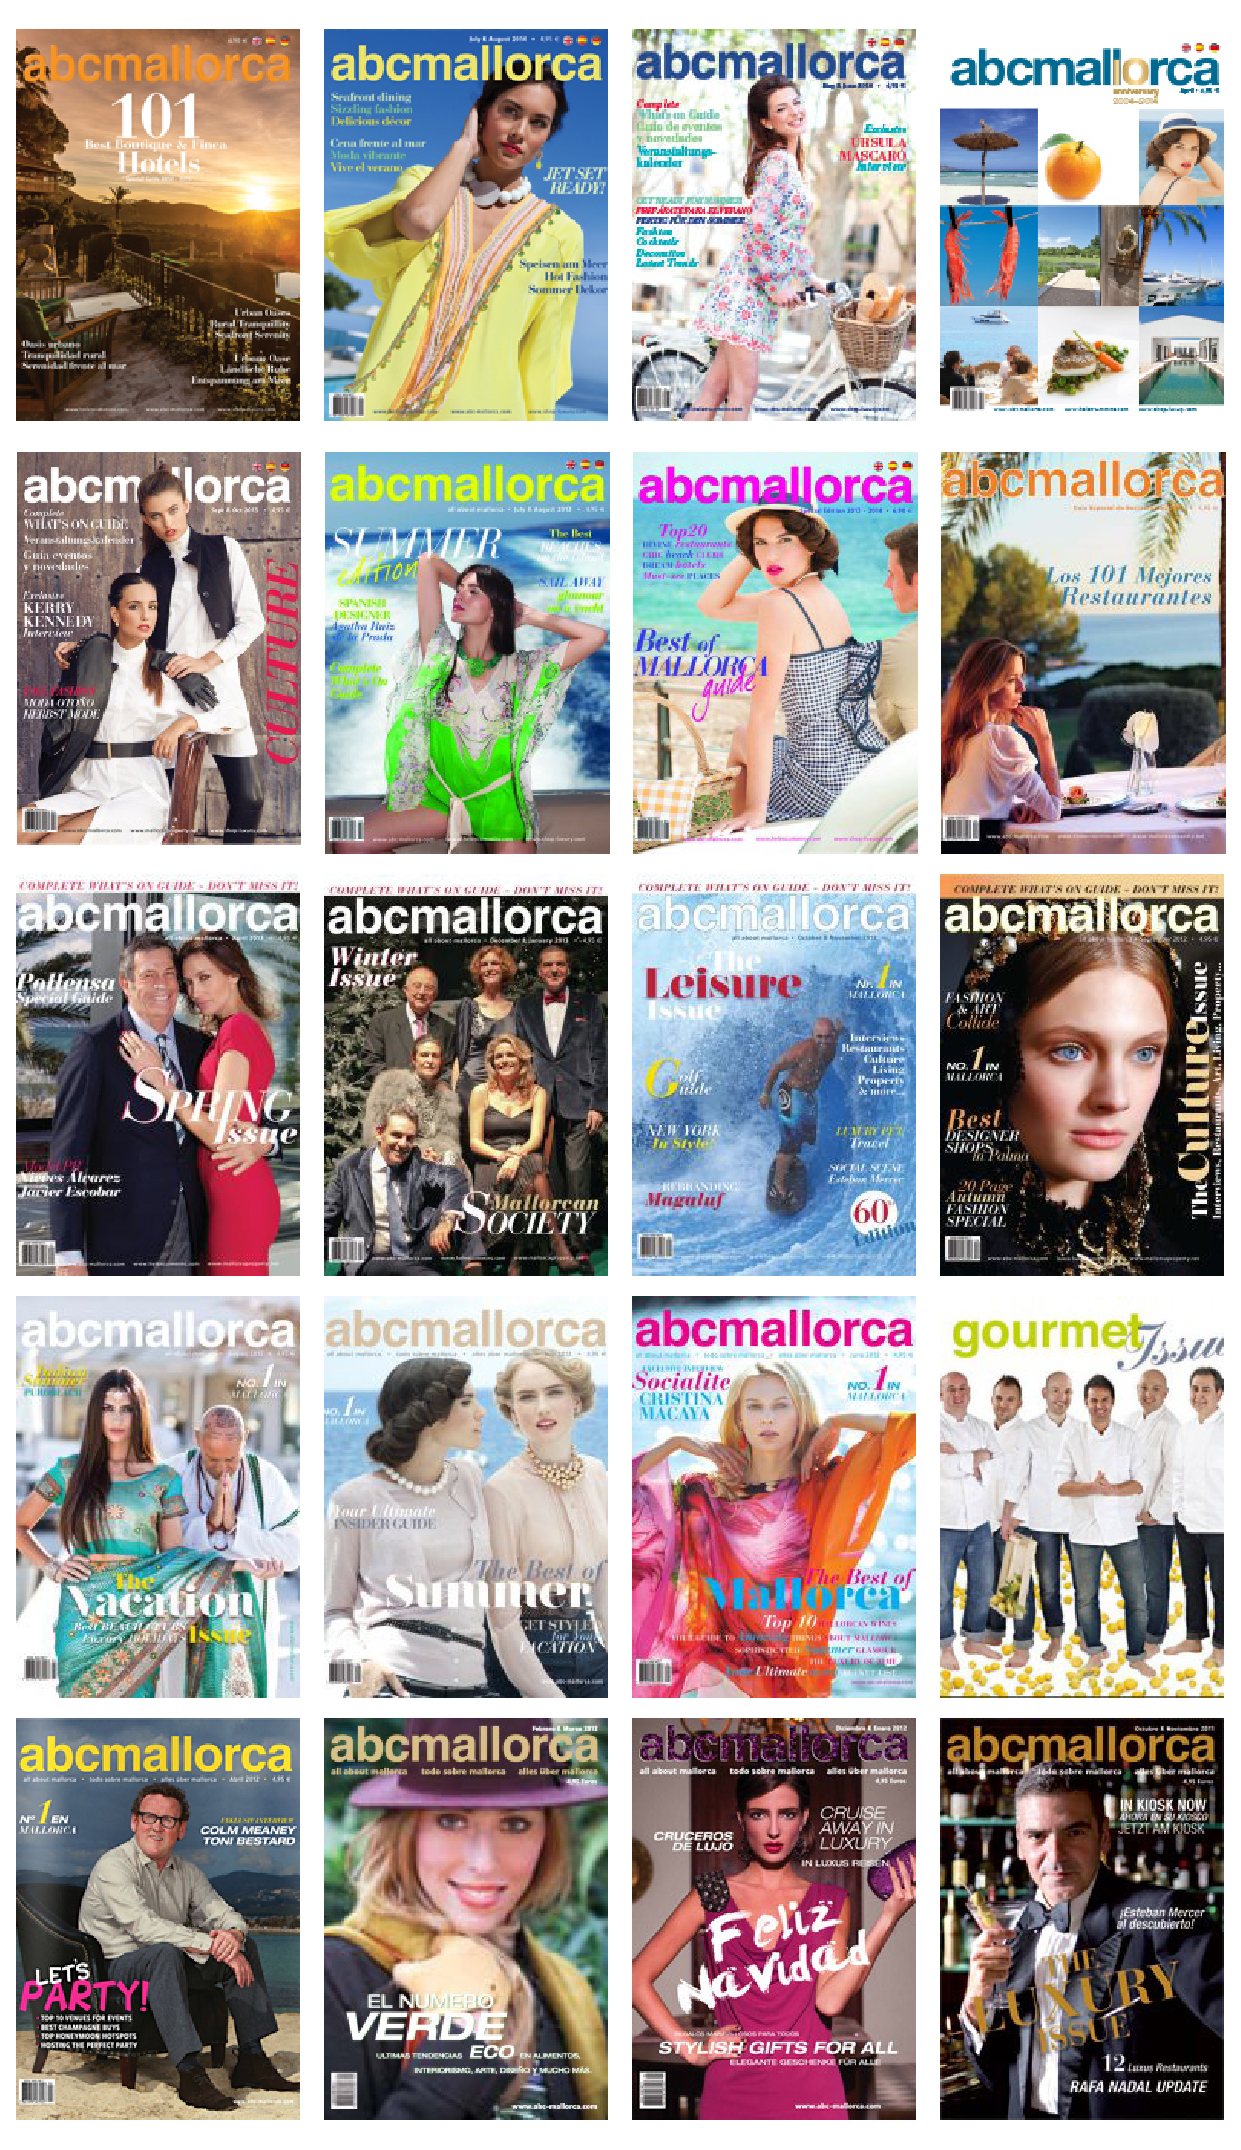 ABCMALLORCA COVERS